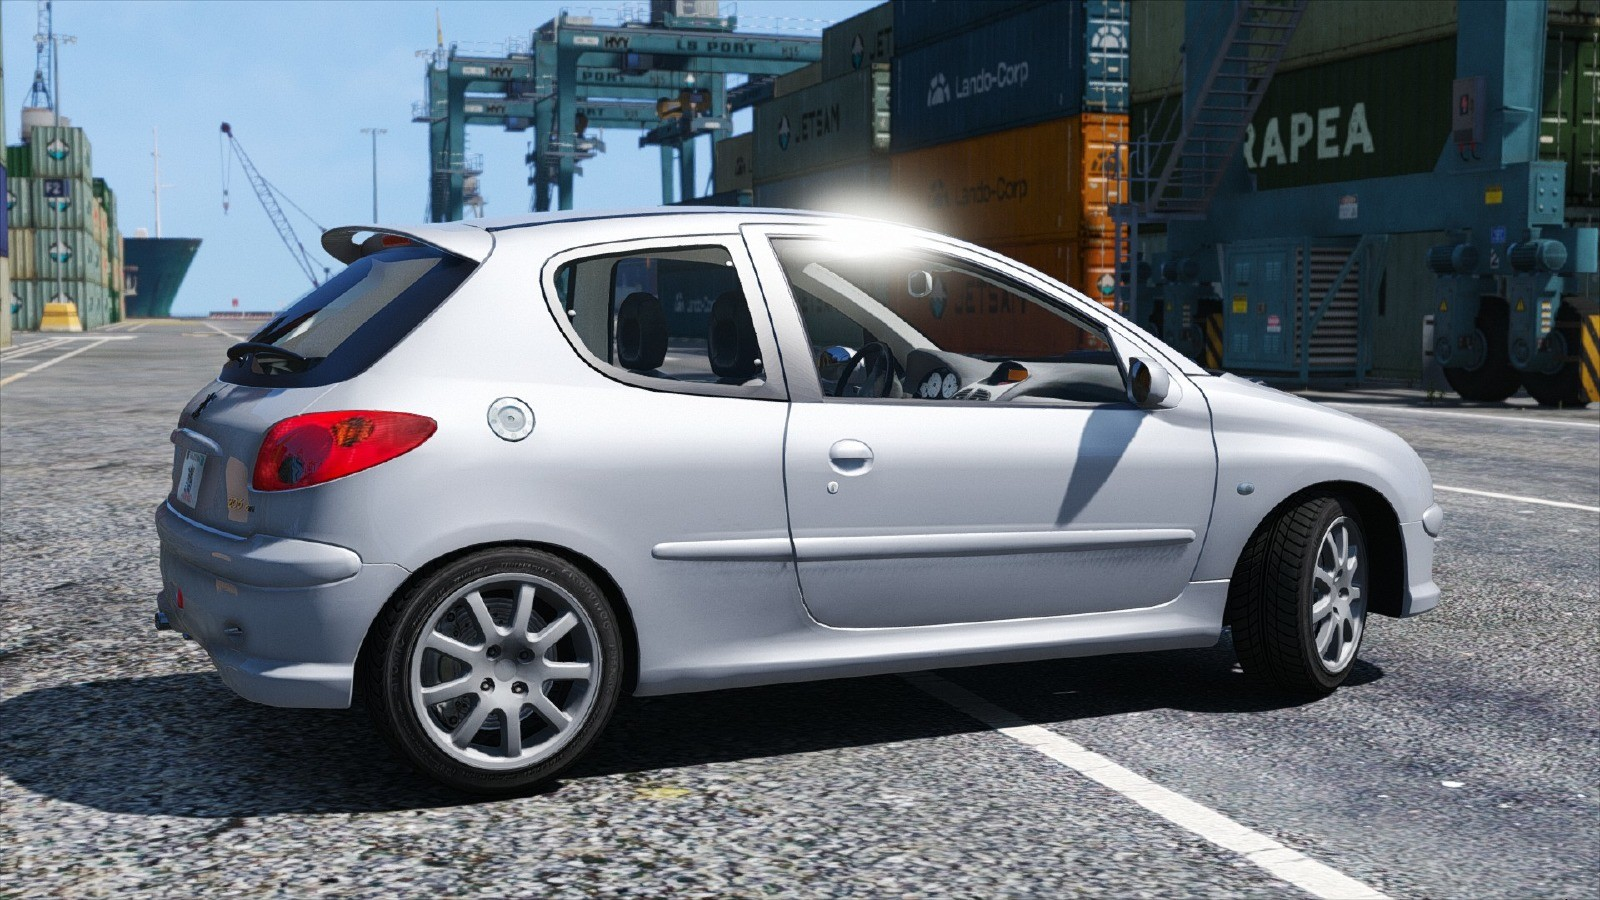 peugeot 206 gti v hicules t l chargements gta 5. Black Bedroom Furniture Sets. Home Design Ideas